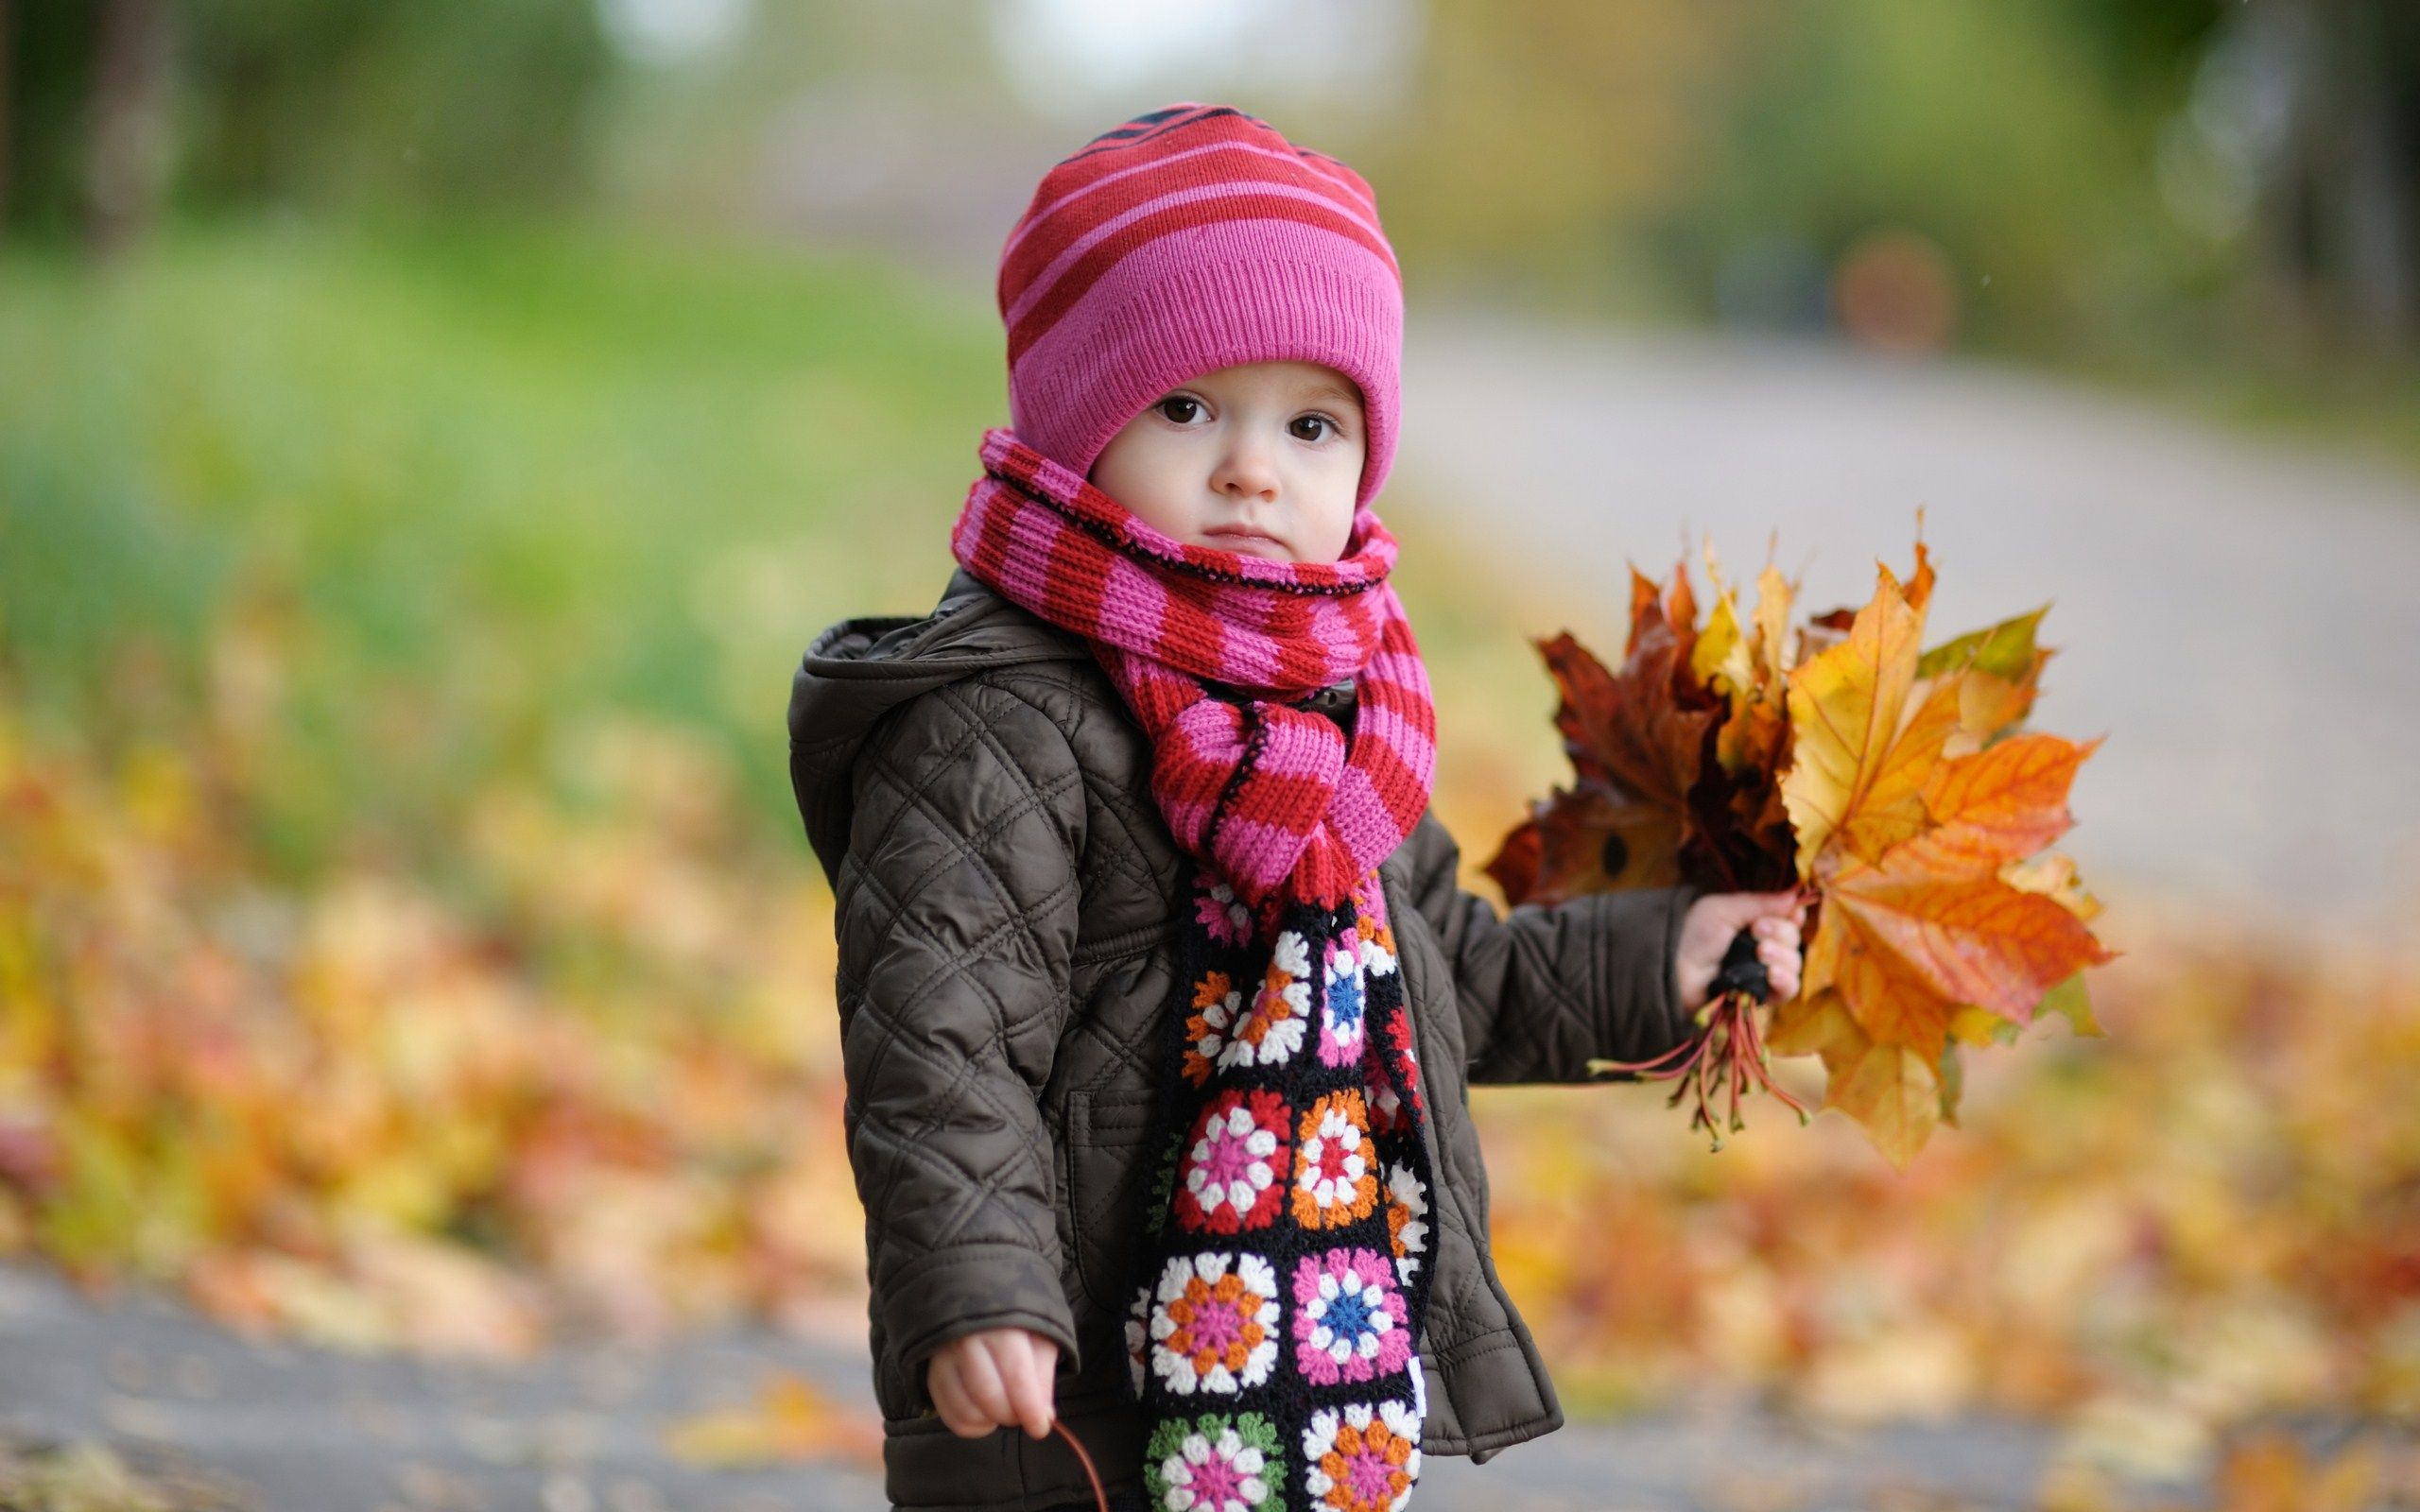 View Sweet Little Girl Child Autumn Leaves Photo HD Wallpaper *melts ...